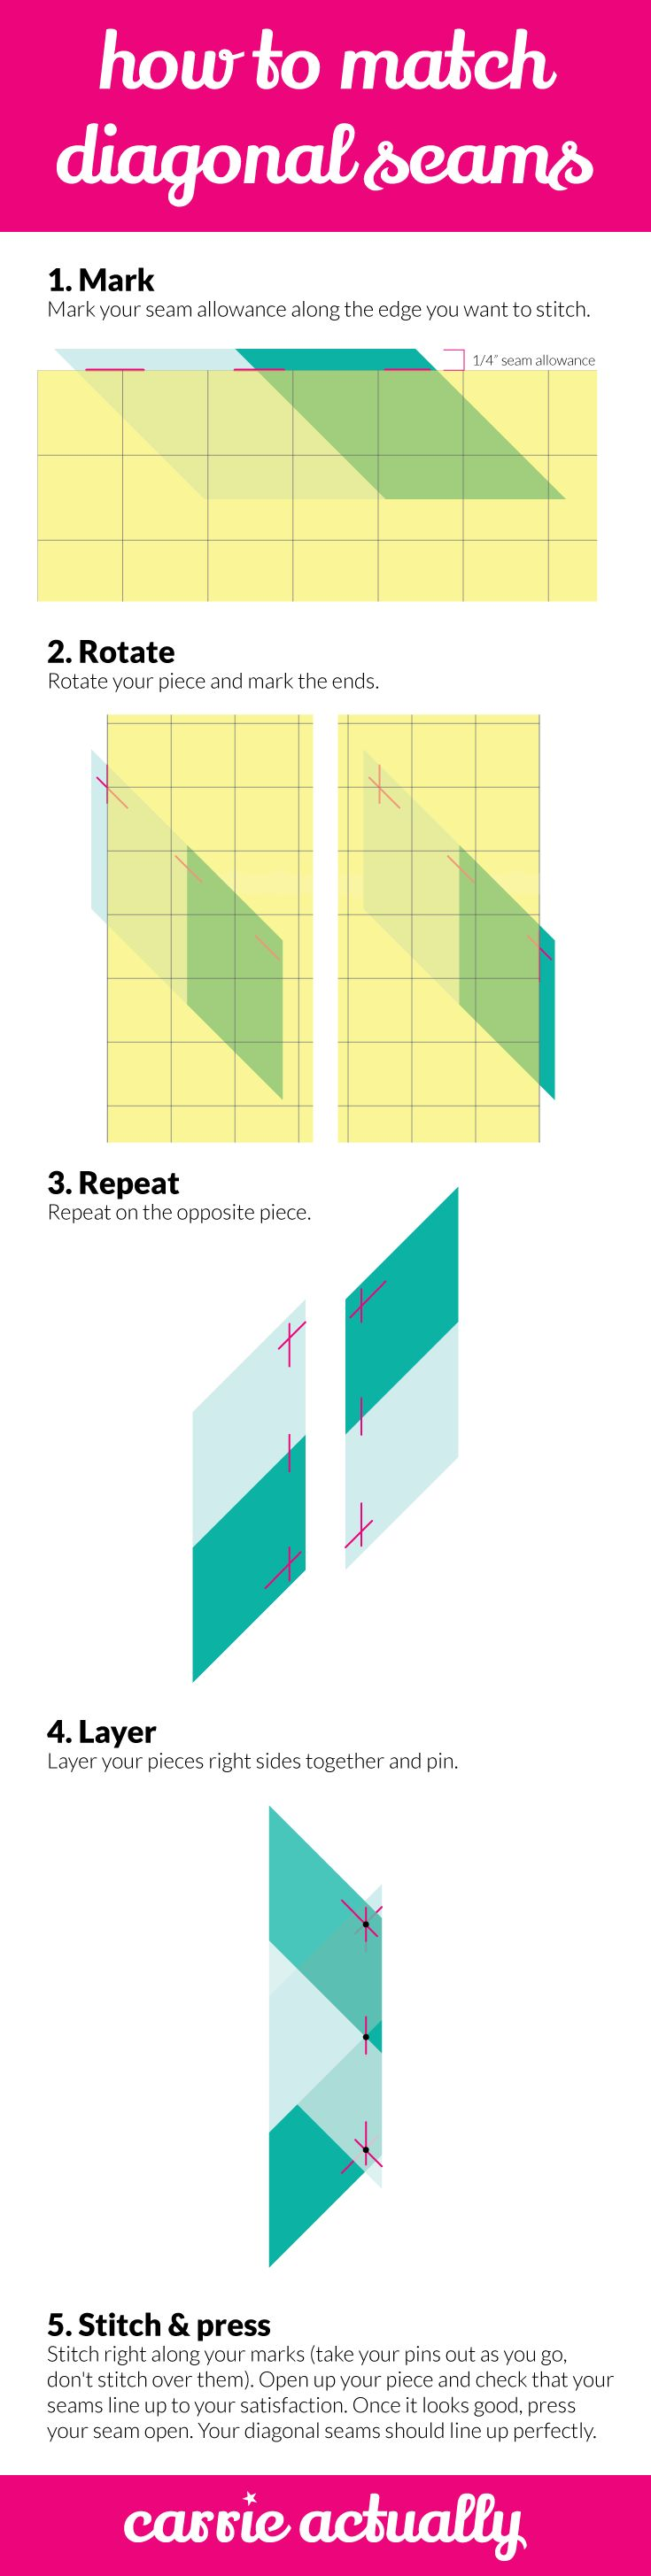 How to Match Diagonal Seams When Piecing Your Quilt | quilting, quilt, technique, skill builder, skill building